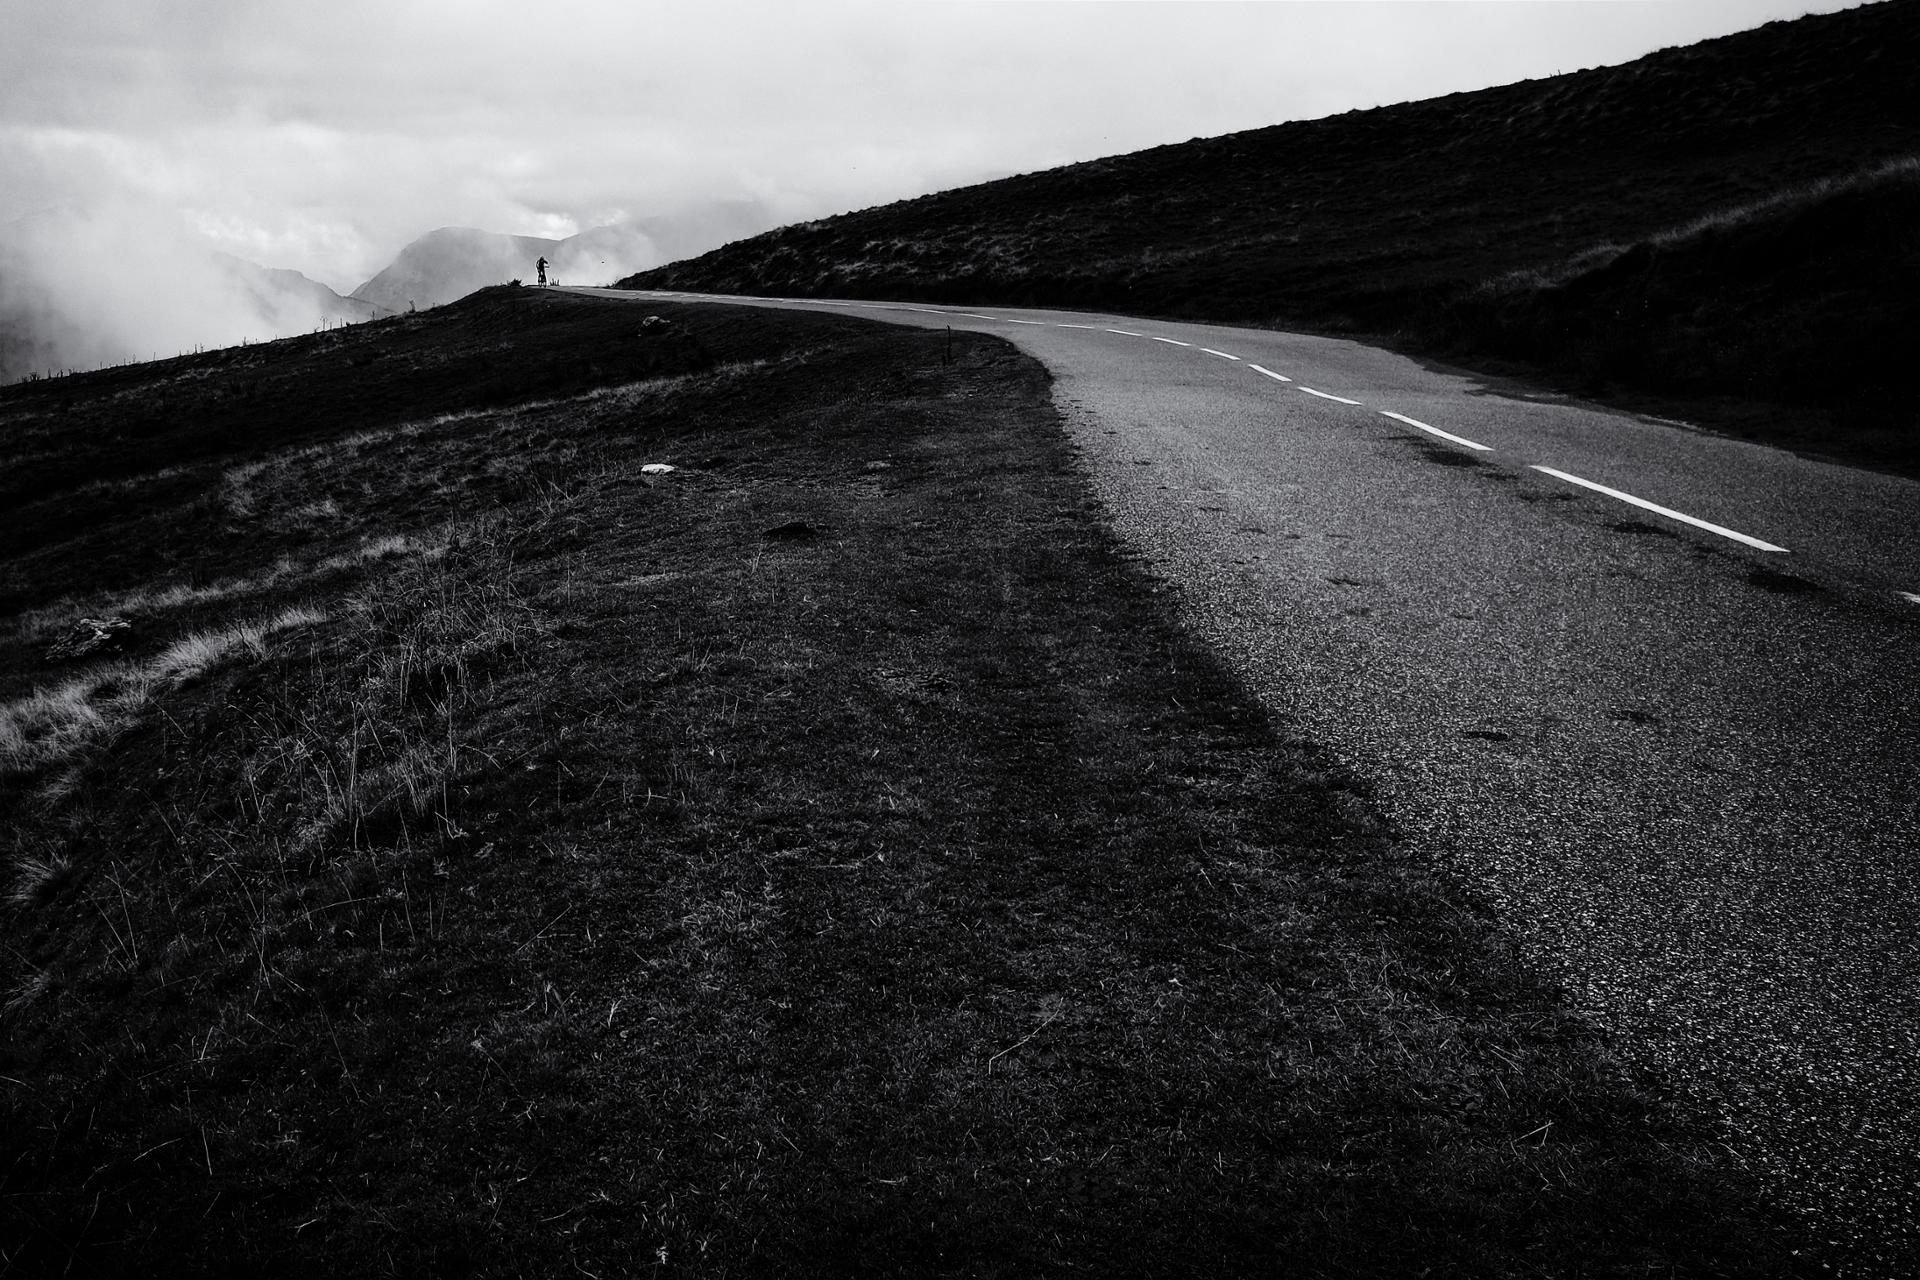 lonesome aubisque approach